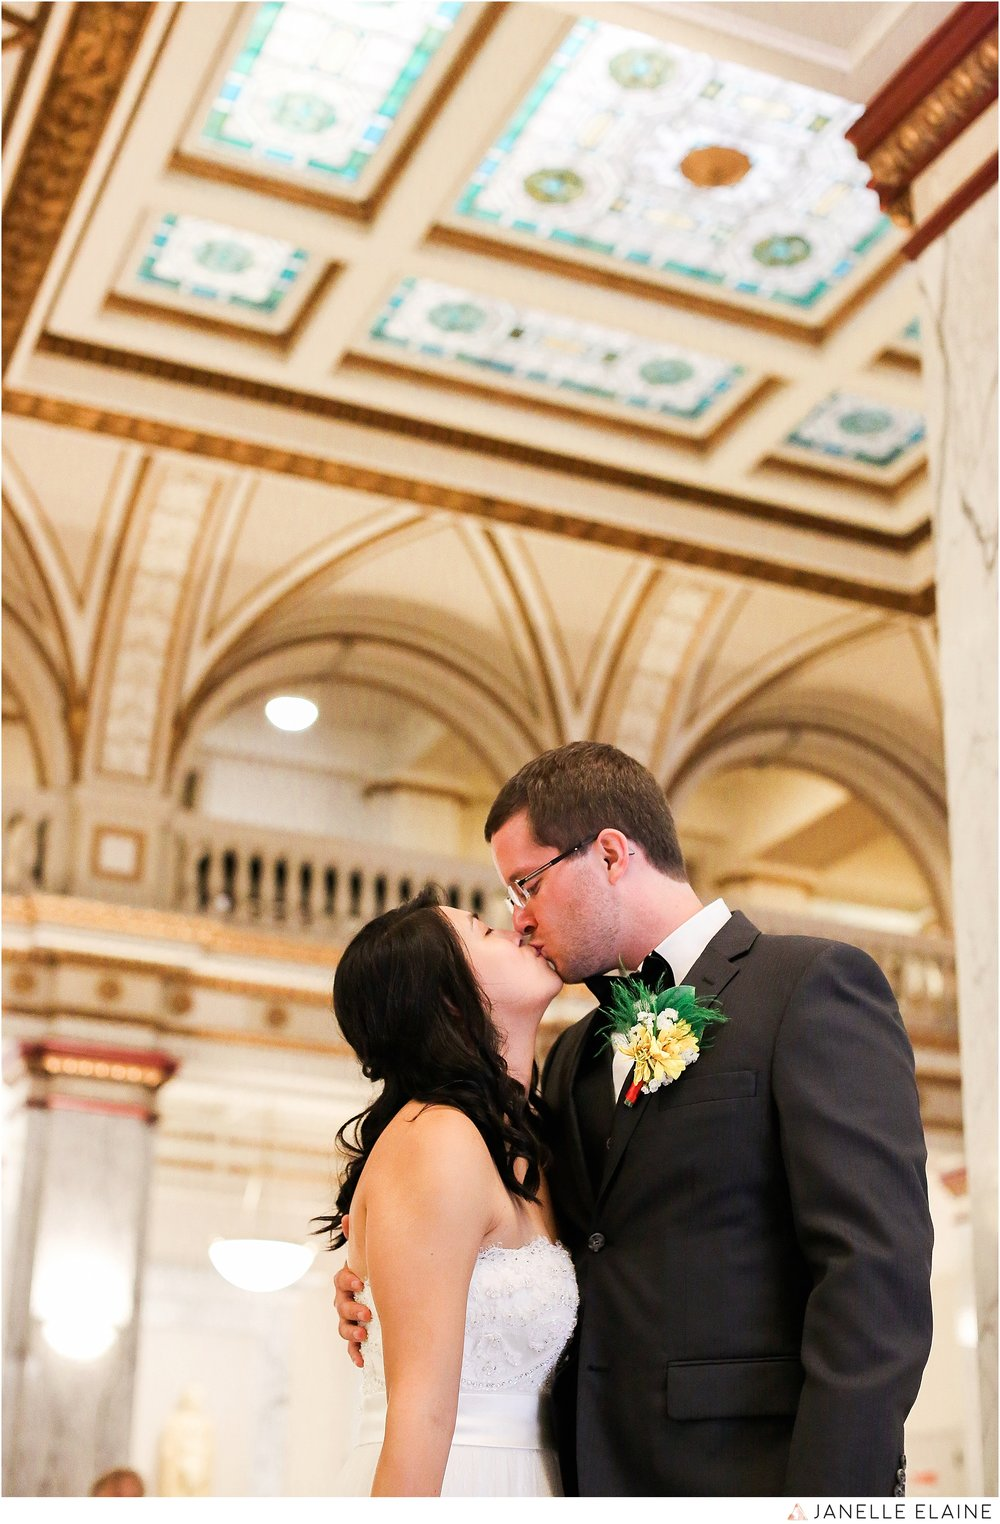 janelle elaine photography-professional wedding photographer seattle--77.jpg